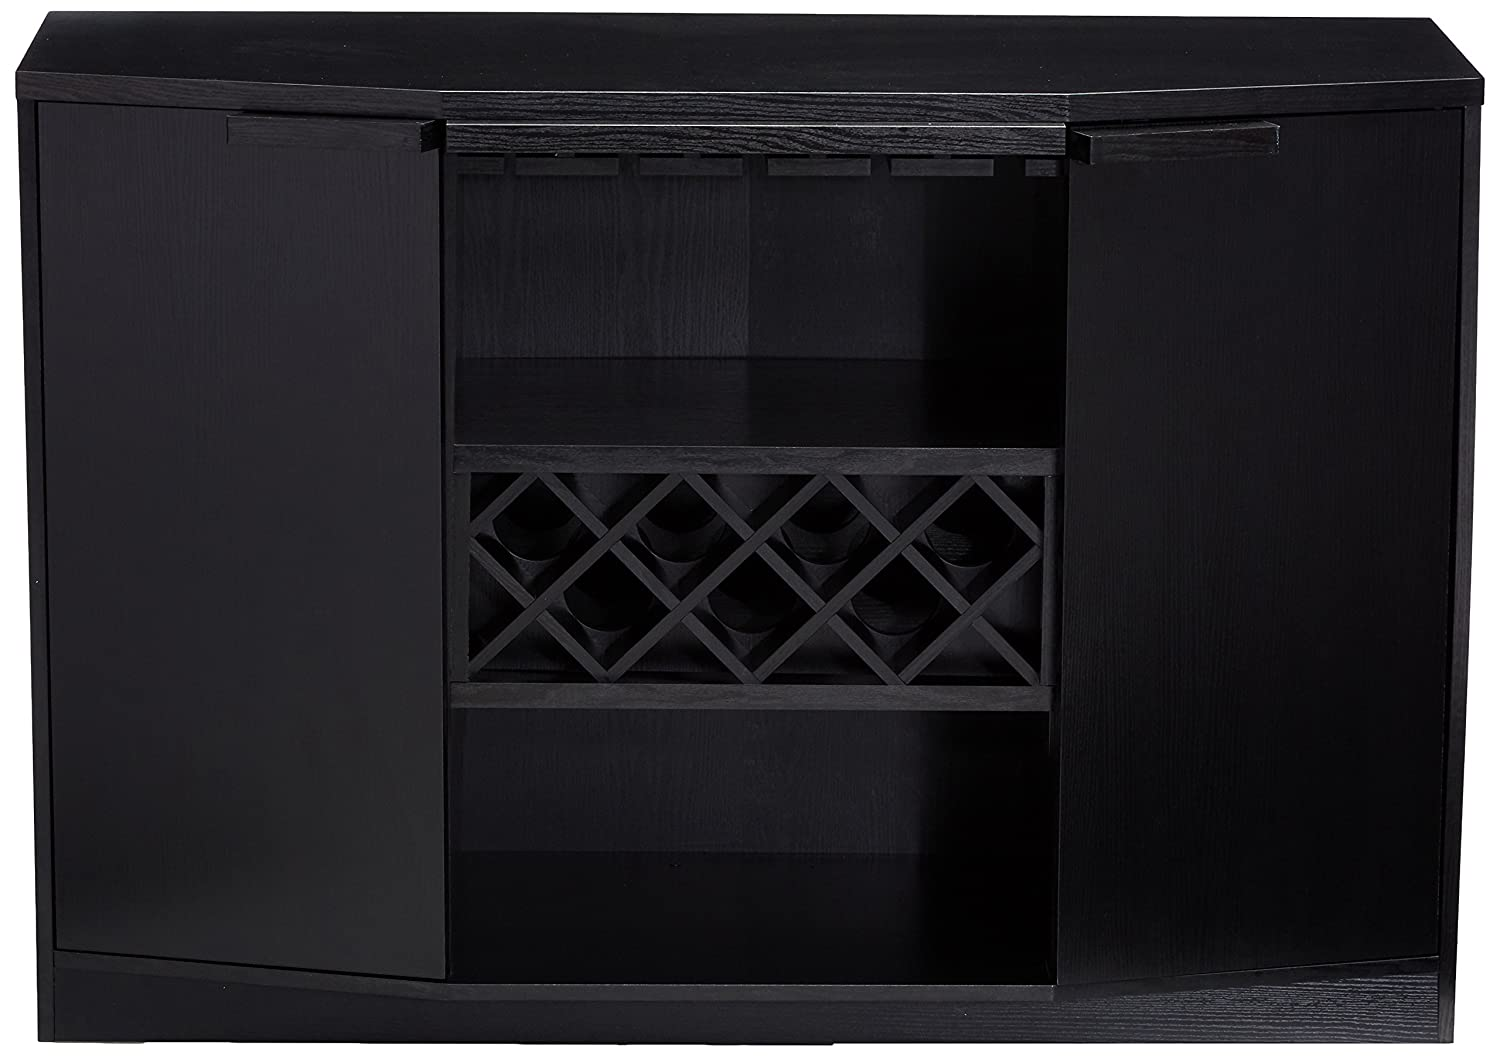 247SHOPATHOME YNJ-1445-1 Wine-cabinets Black